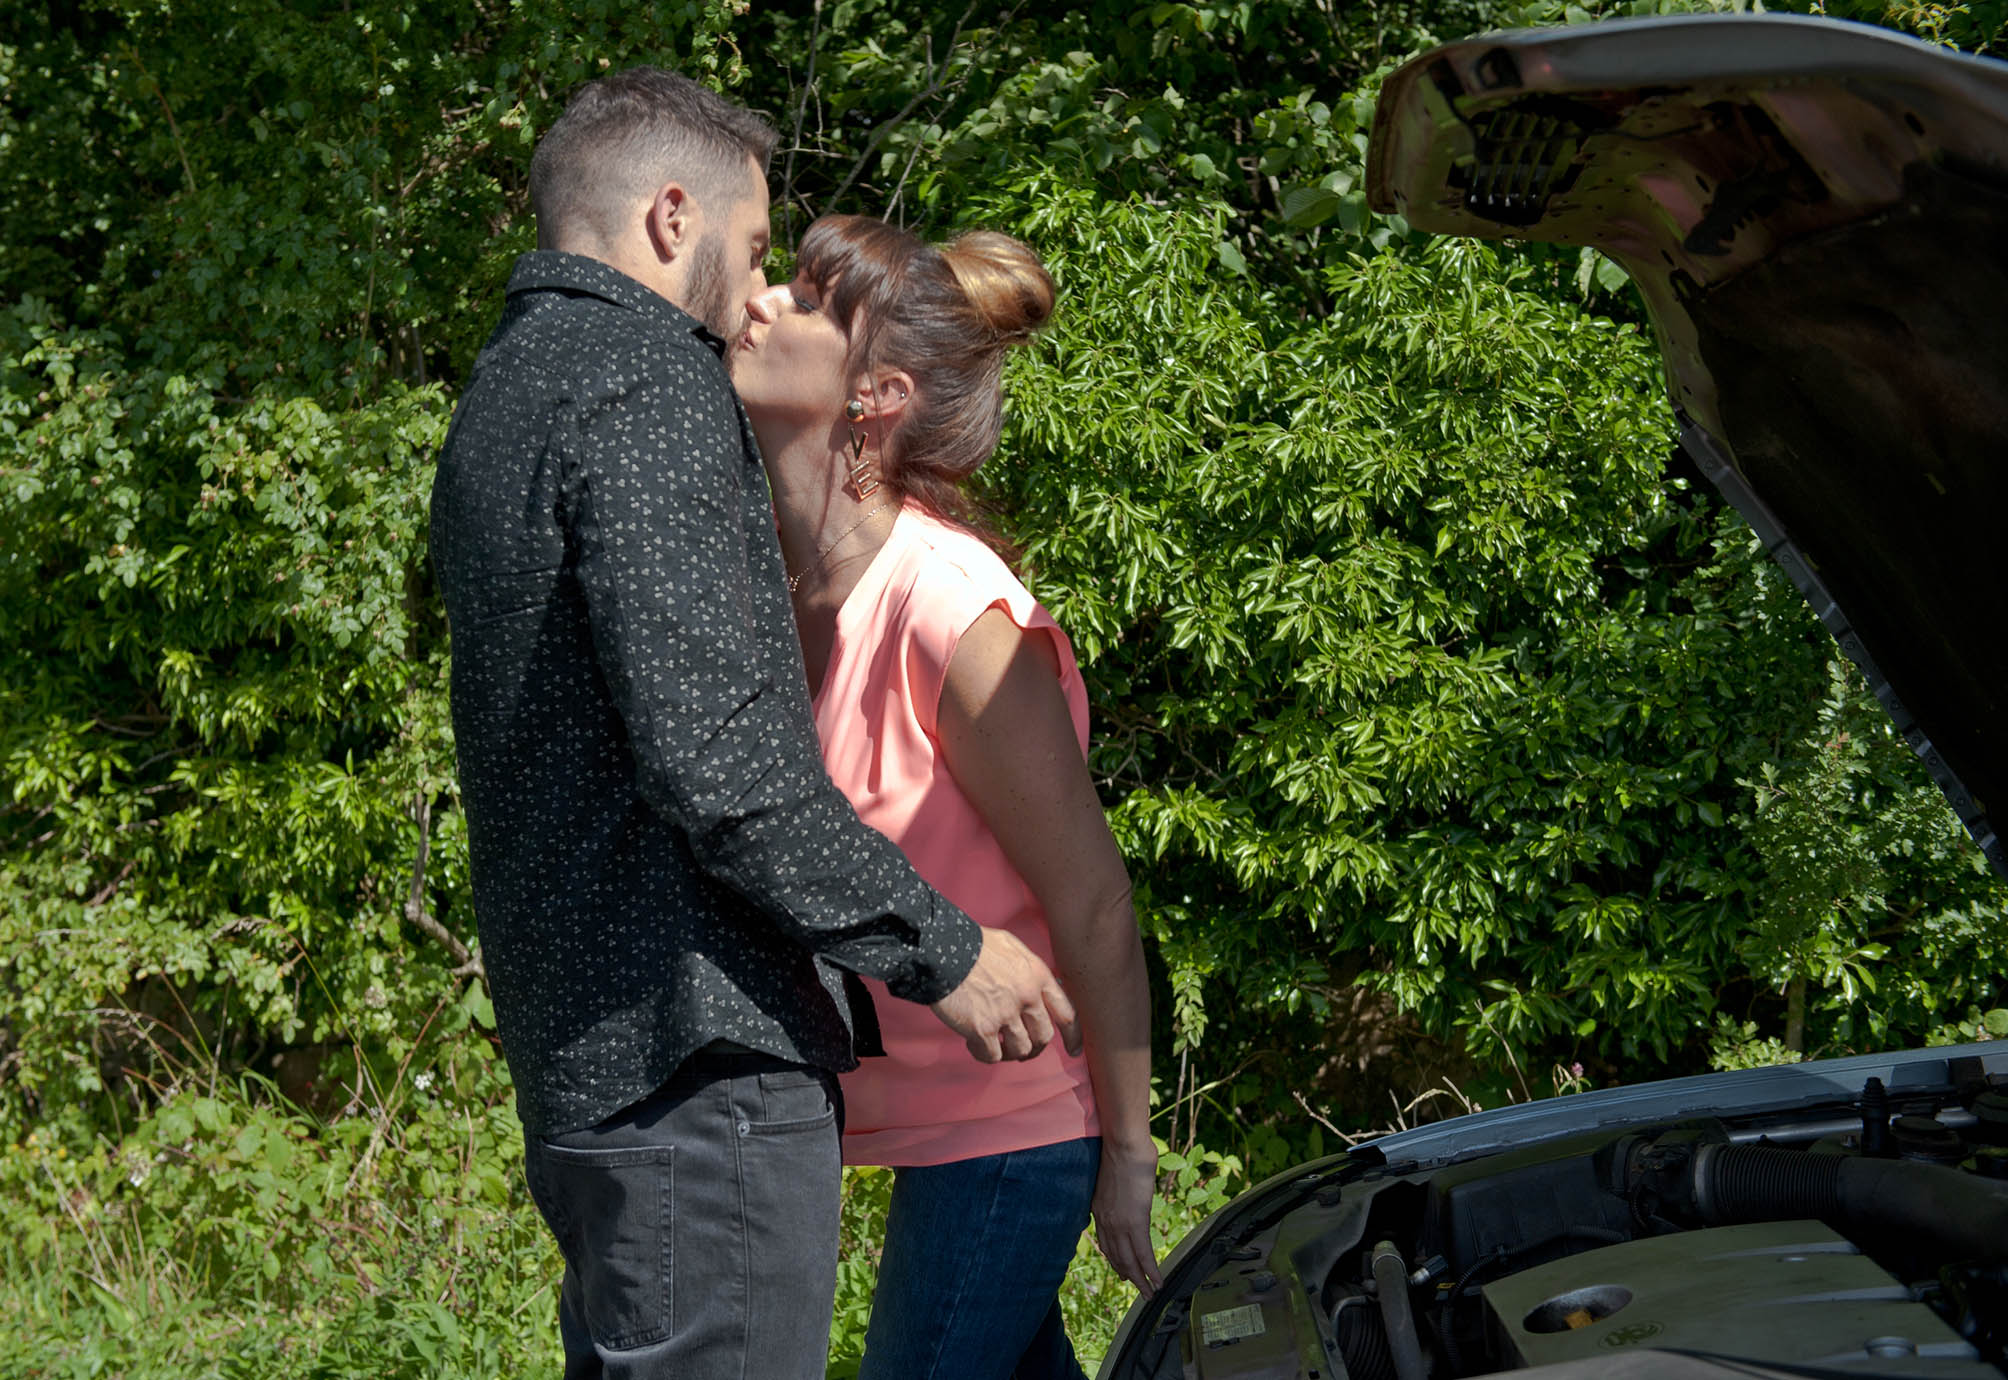 FROM ITV STRICT EMBARGO - NO USE BEFORE TUESDAY 30 AUGUST 2016 Emmerdale - Ep 7608 Tuesday 6th September 2016 A reckless Kerry Wyatt [LAURA NORTON] kisses Ross Barton [MICHAEL PARR] and he sees an opportunity to win his bet with Pete... Picture contact: david.crook@itv.com on 0161 952 6214 Photographer - Amy Brammall This photograph is (C) ITV Plc and can only be reproduced for editorial purposes directly in connection with the programme or event mentioned above, or ITV plc. Once made available by ITV plc Picture Desk, this photograph can be reproduced once only up until the transmission [TX] date and no reproduction fee will be charged. Any subsequent usage may incur a fee. This photograph must not be manipulated [excluding basic cropping] in a manner which alters the visual appearance of the person photographed deemed detrimental or inappropriate by ITV plc Picture Desk. This photograph must not be syndicated to any other company, publication or website, or permanently archived, without the express written permission of ITV Plc Picture Desk. Full Terms and conditions are available on the website www.itvpictures.com